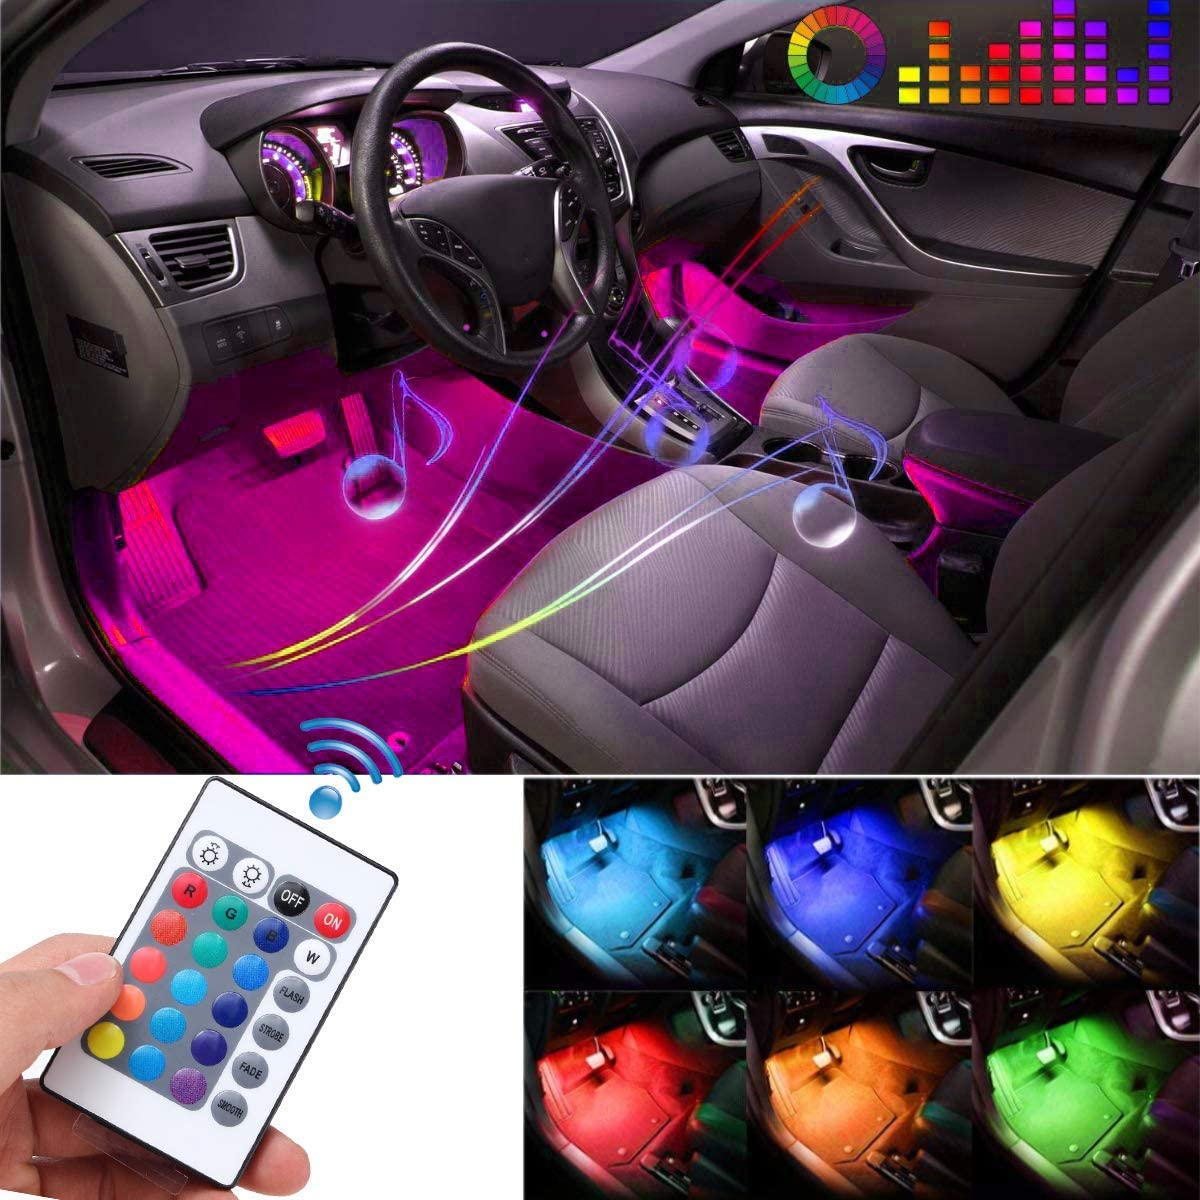 DIY Color and Music Synchronized Atmosphere Neon Lights Strip for Vehicle Interior. Interior Car LED Strip Lights DC 12V Under Dash RGB Car Led Strip with IR Remote and App Controlled